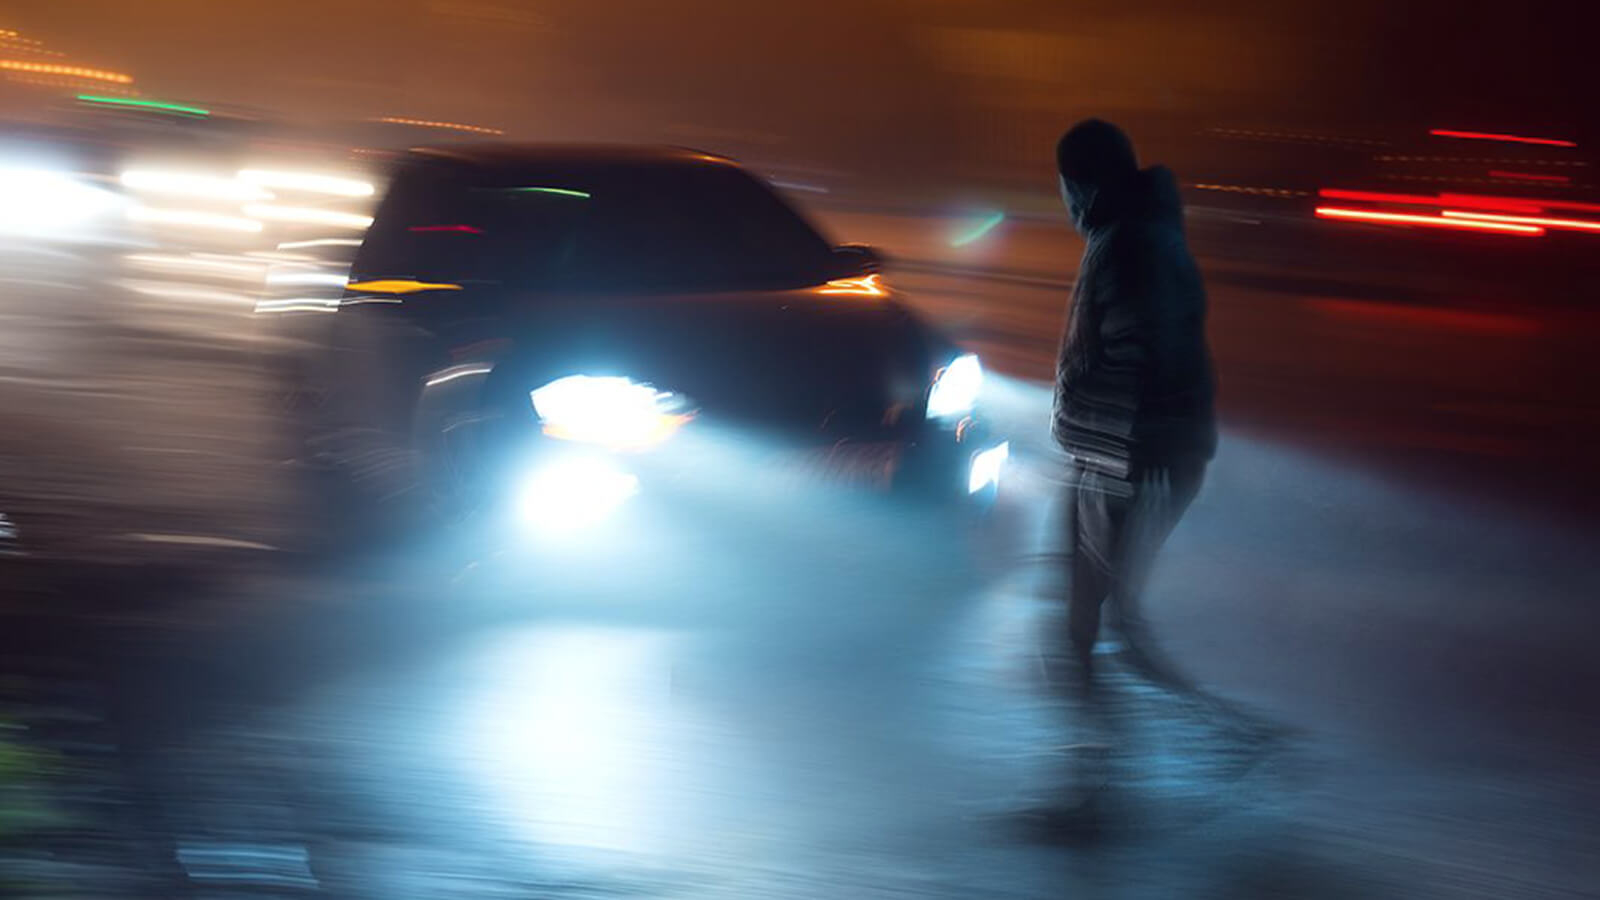 Why is night driving dangerous